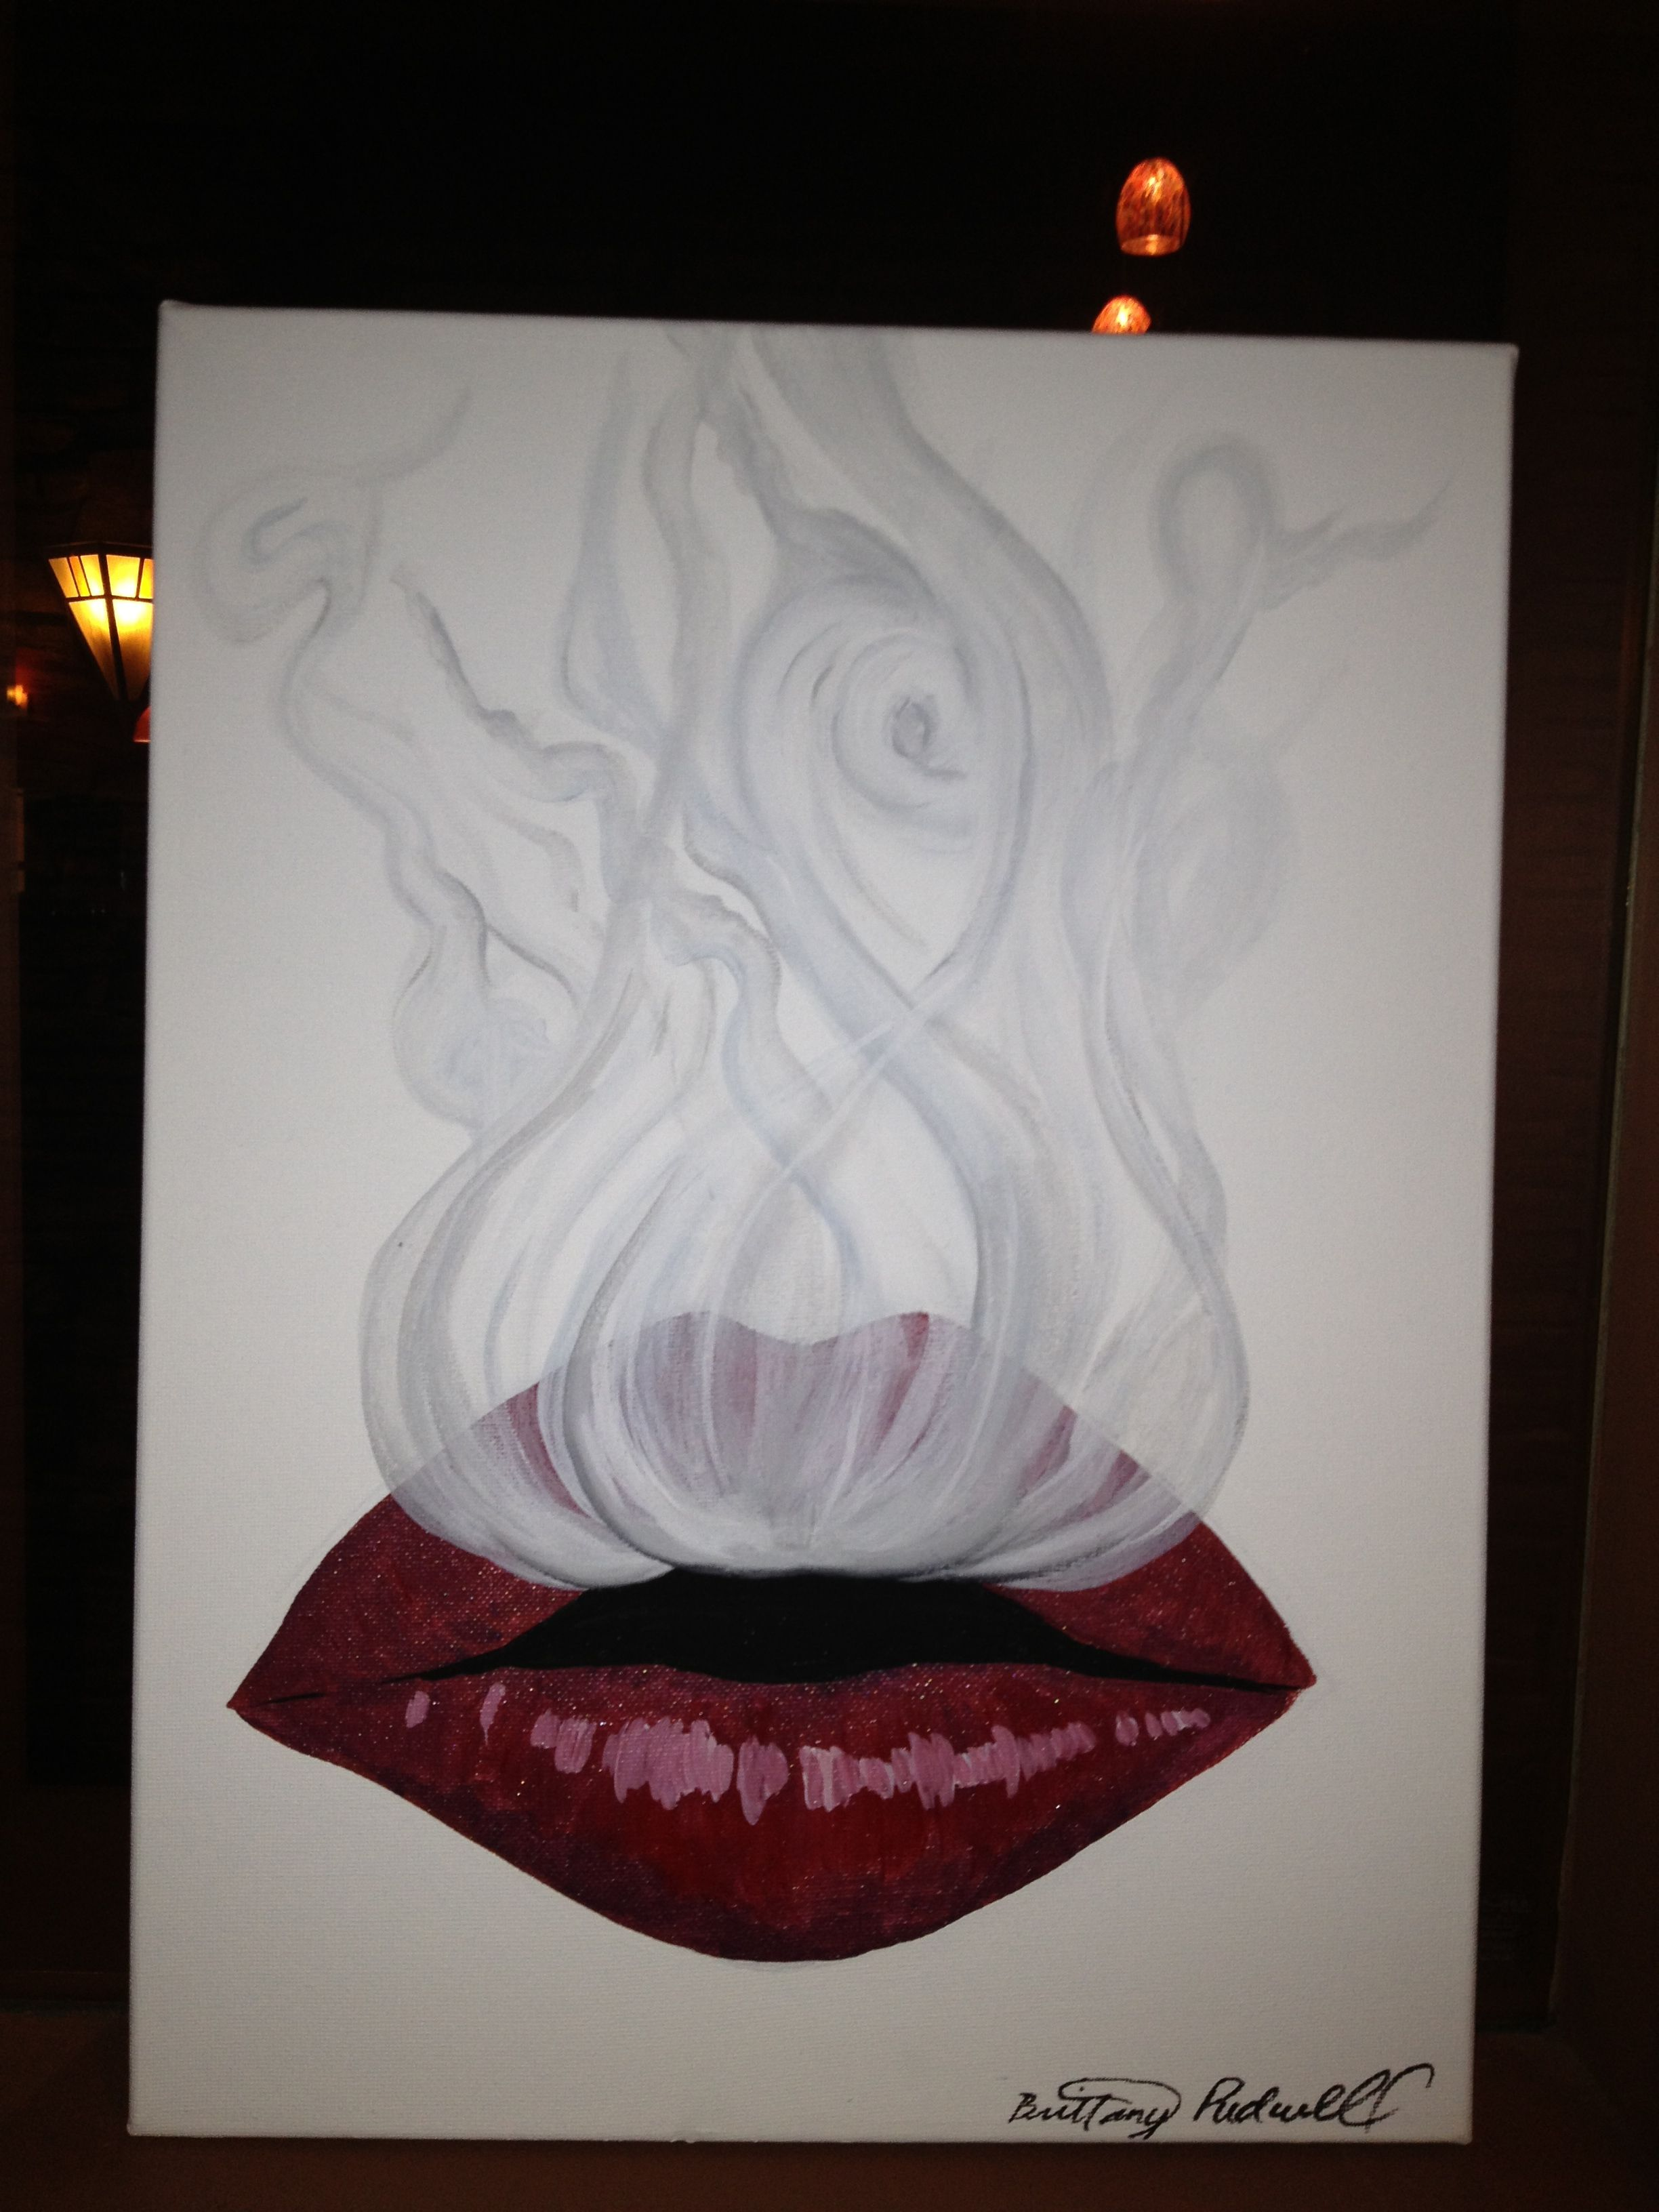 Red lips smoke drawings paintings tattoo ideas